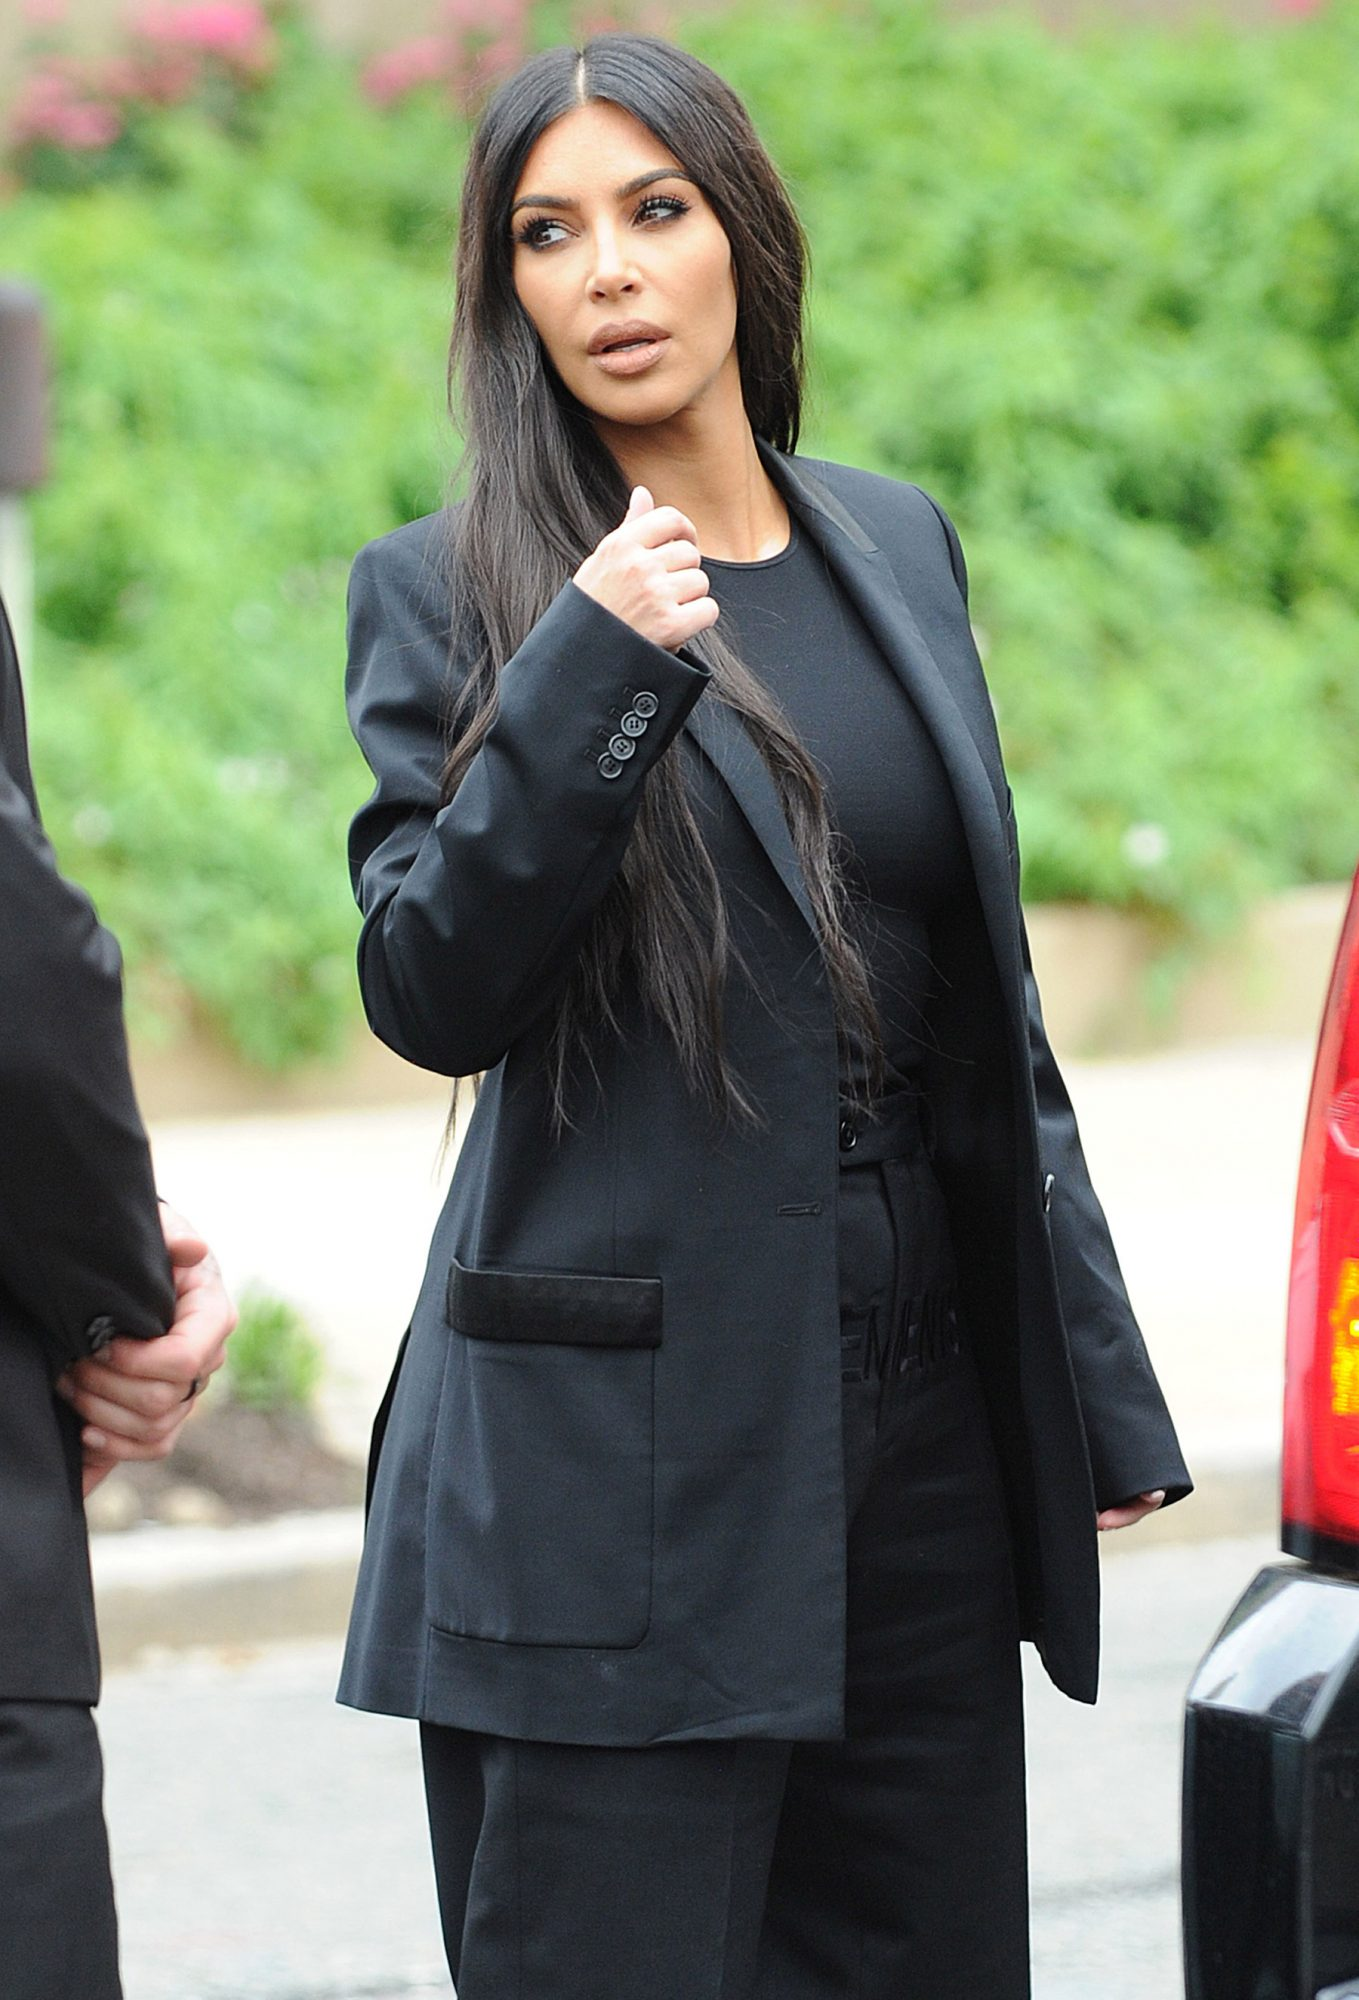 Kim Kardashian arrived at the White House for a meeting with President Trump to discuss prison reform and Alice Marie Johnson